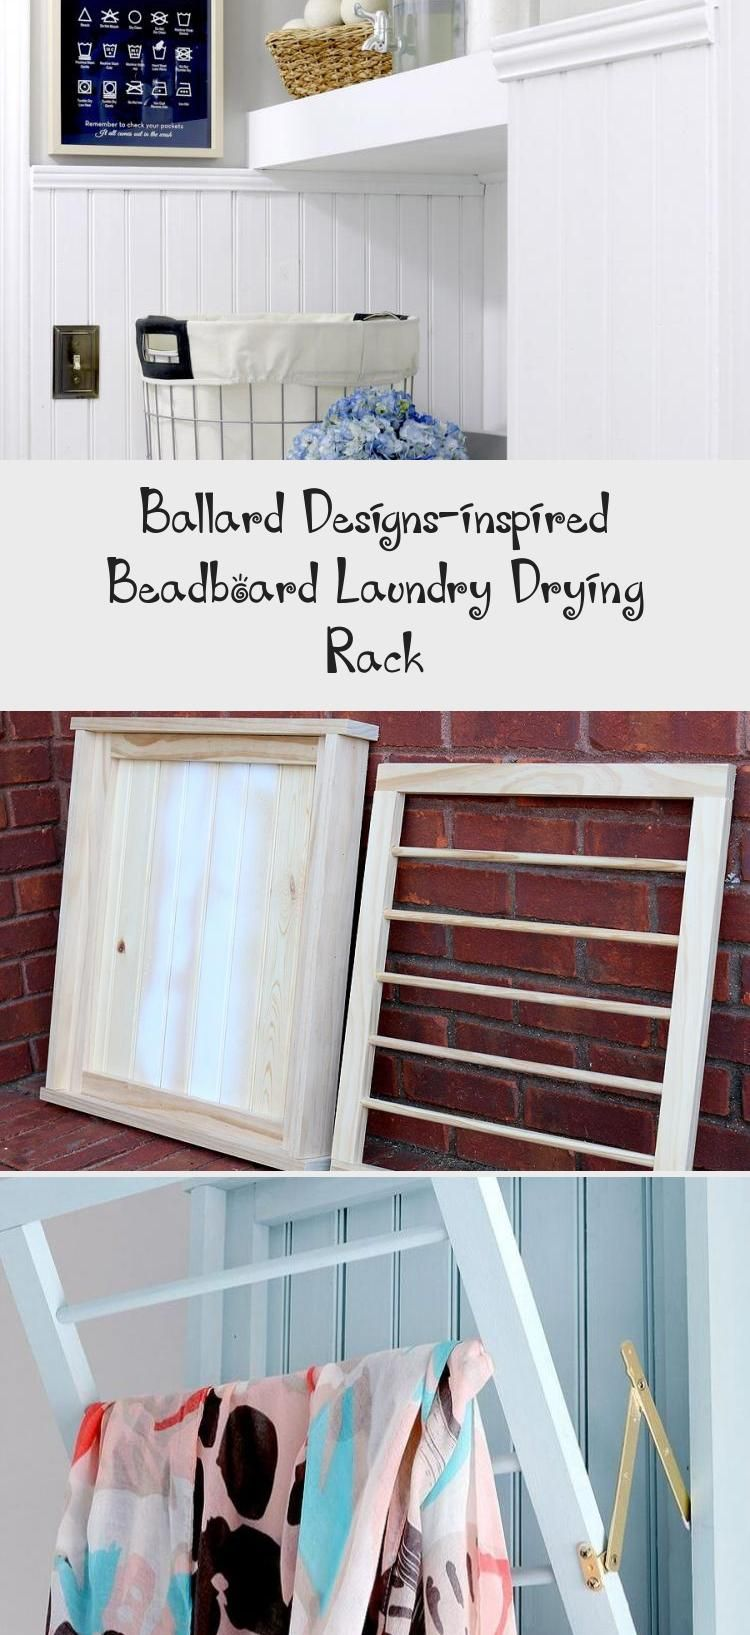 How To Build A Diy Ballard Designs Laundry Drying Rack Laundryroomentryway Laundryroomart Laun In 2020 Vintage Laundry Room Laundry Room Design Laundry Room Layouts